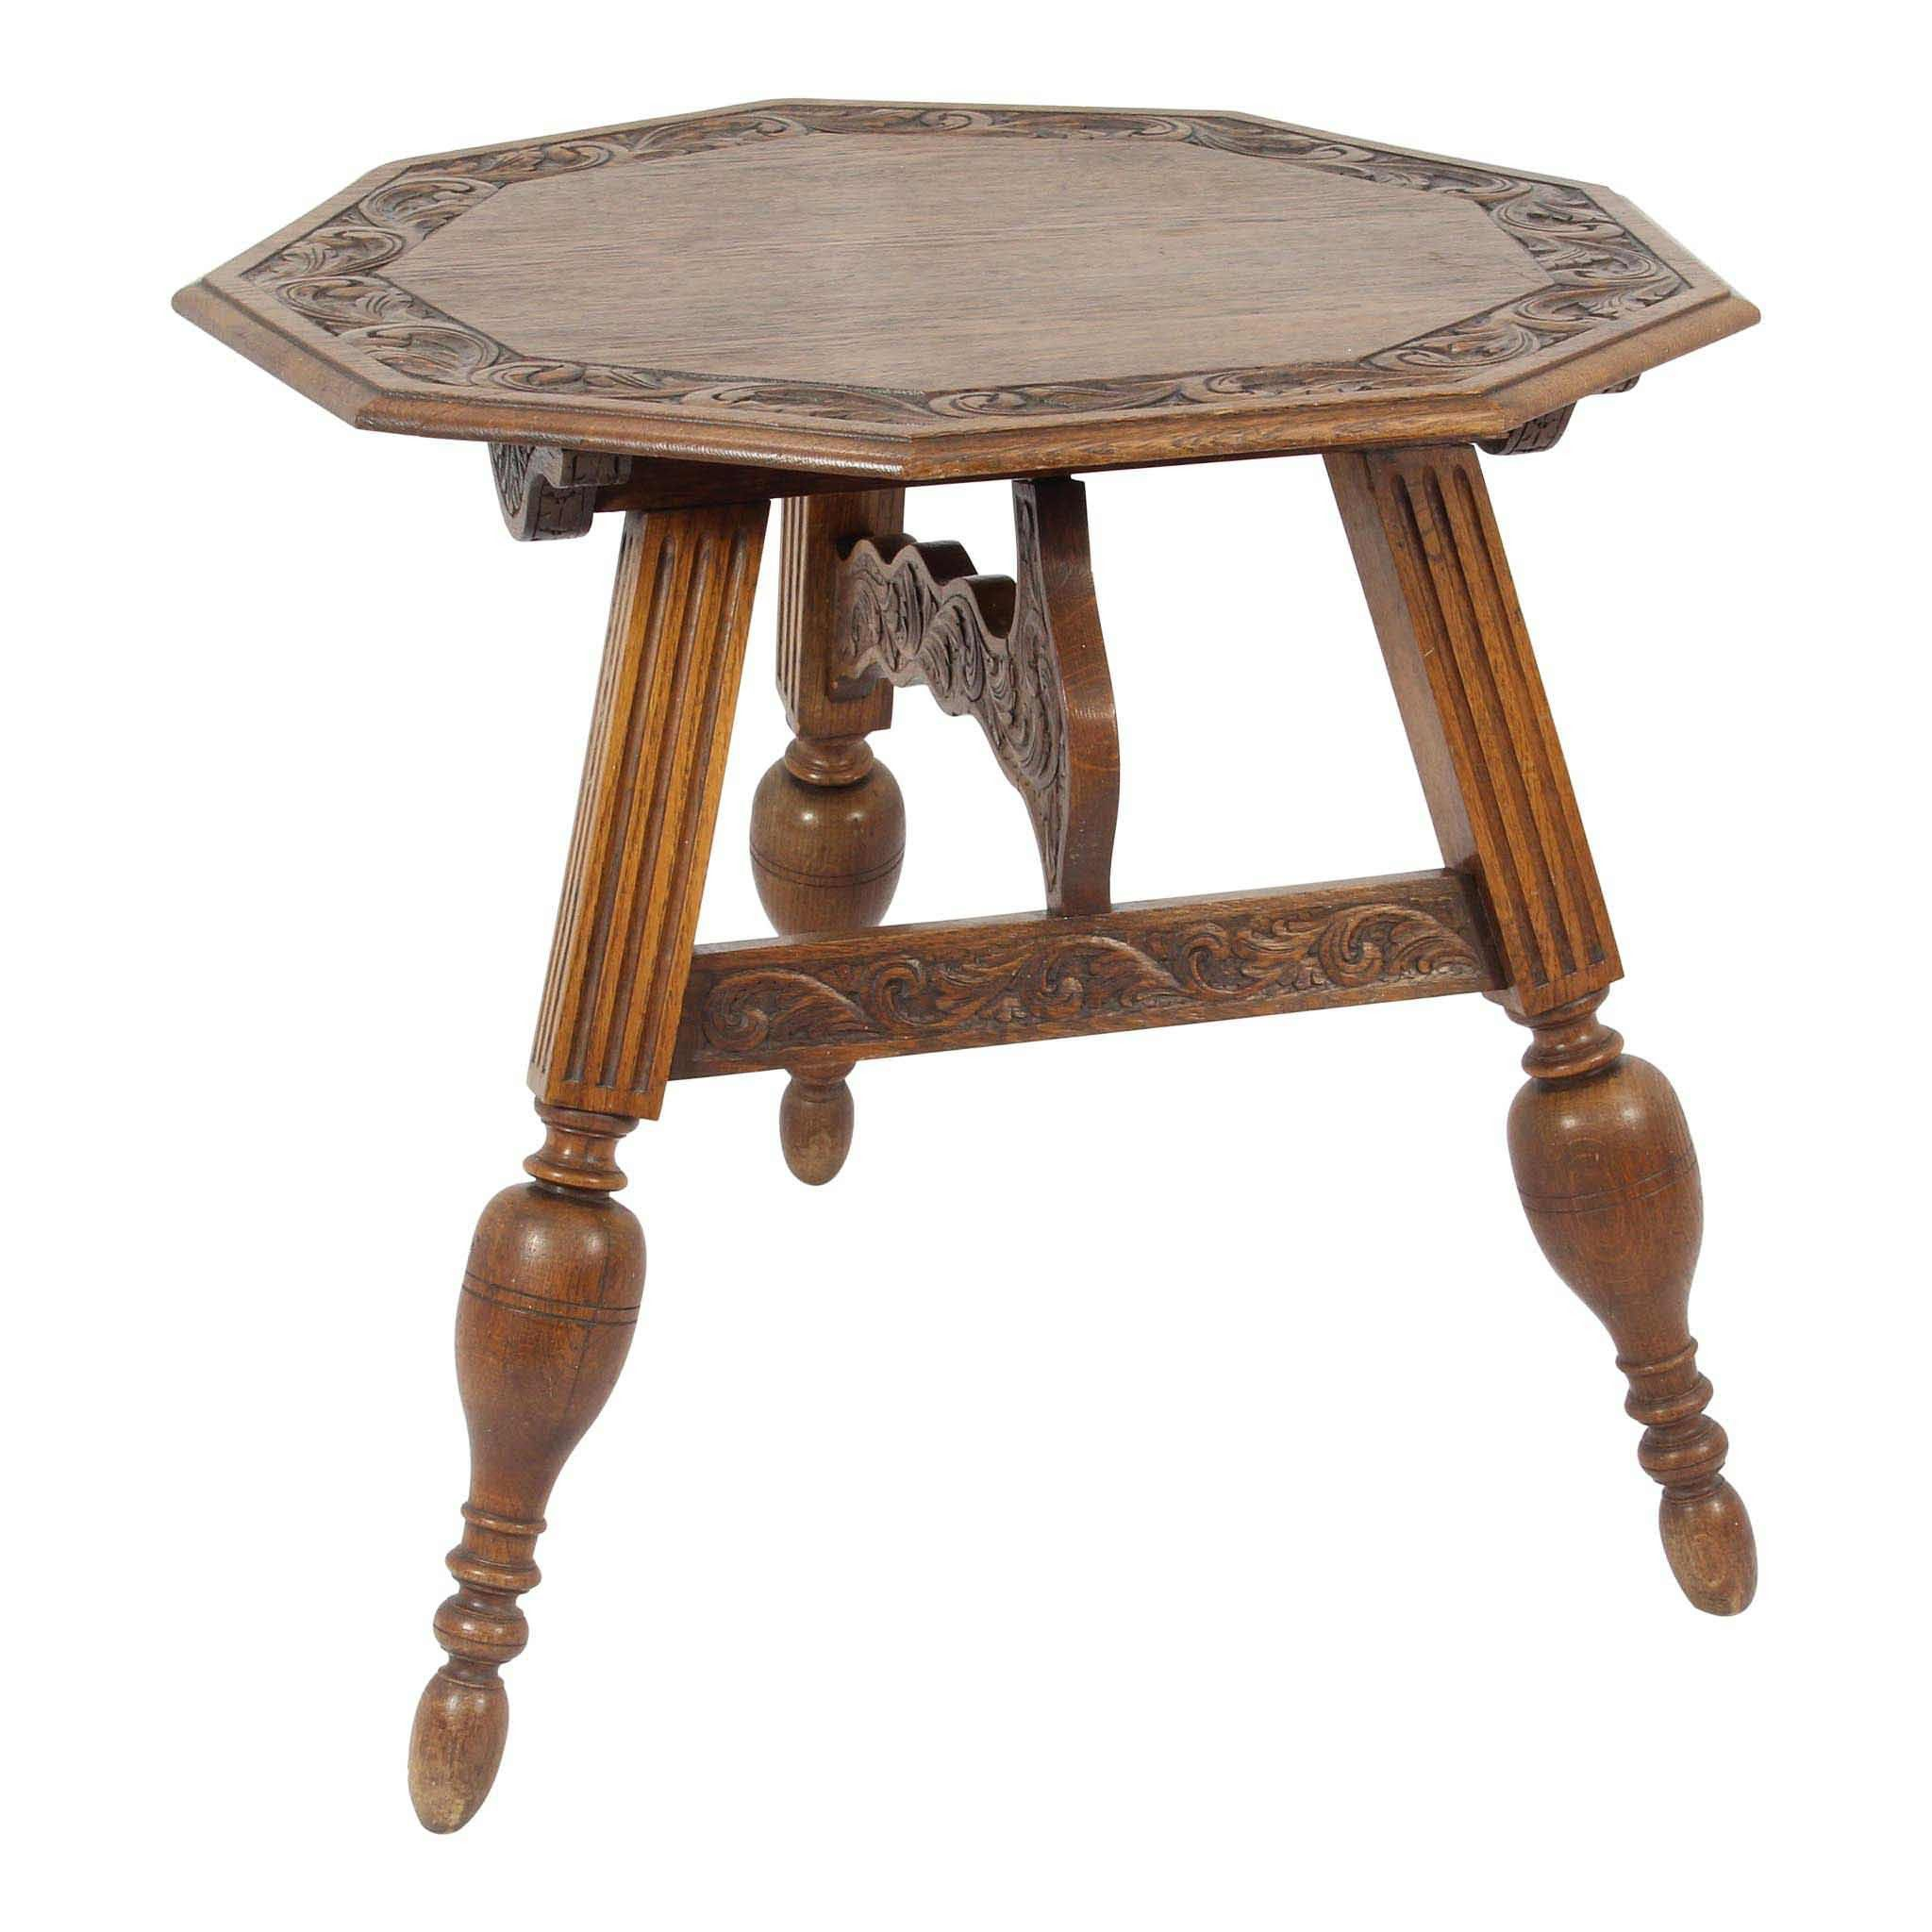 Carved Tables Philippines: PHILIPPINE FURNITURE ANTIQUE : MYO